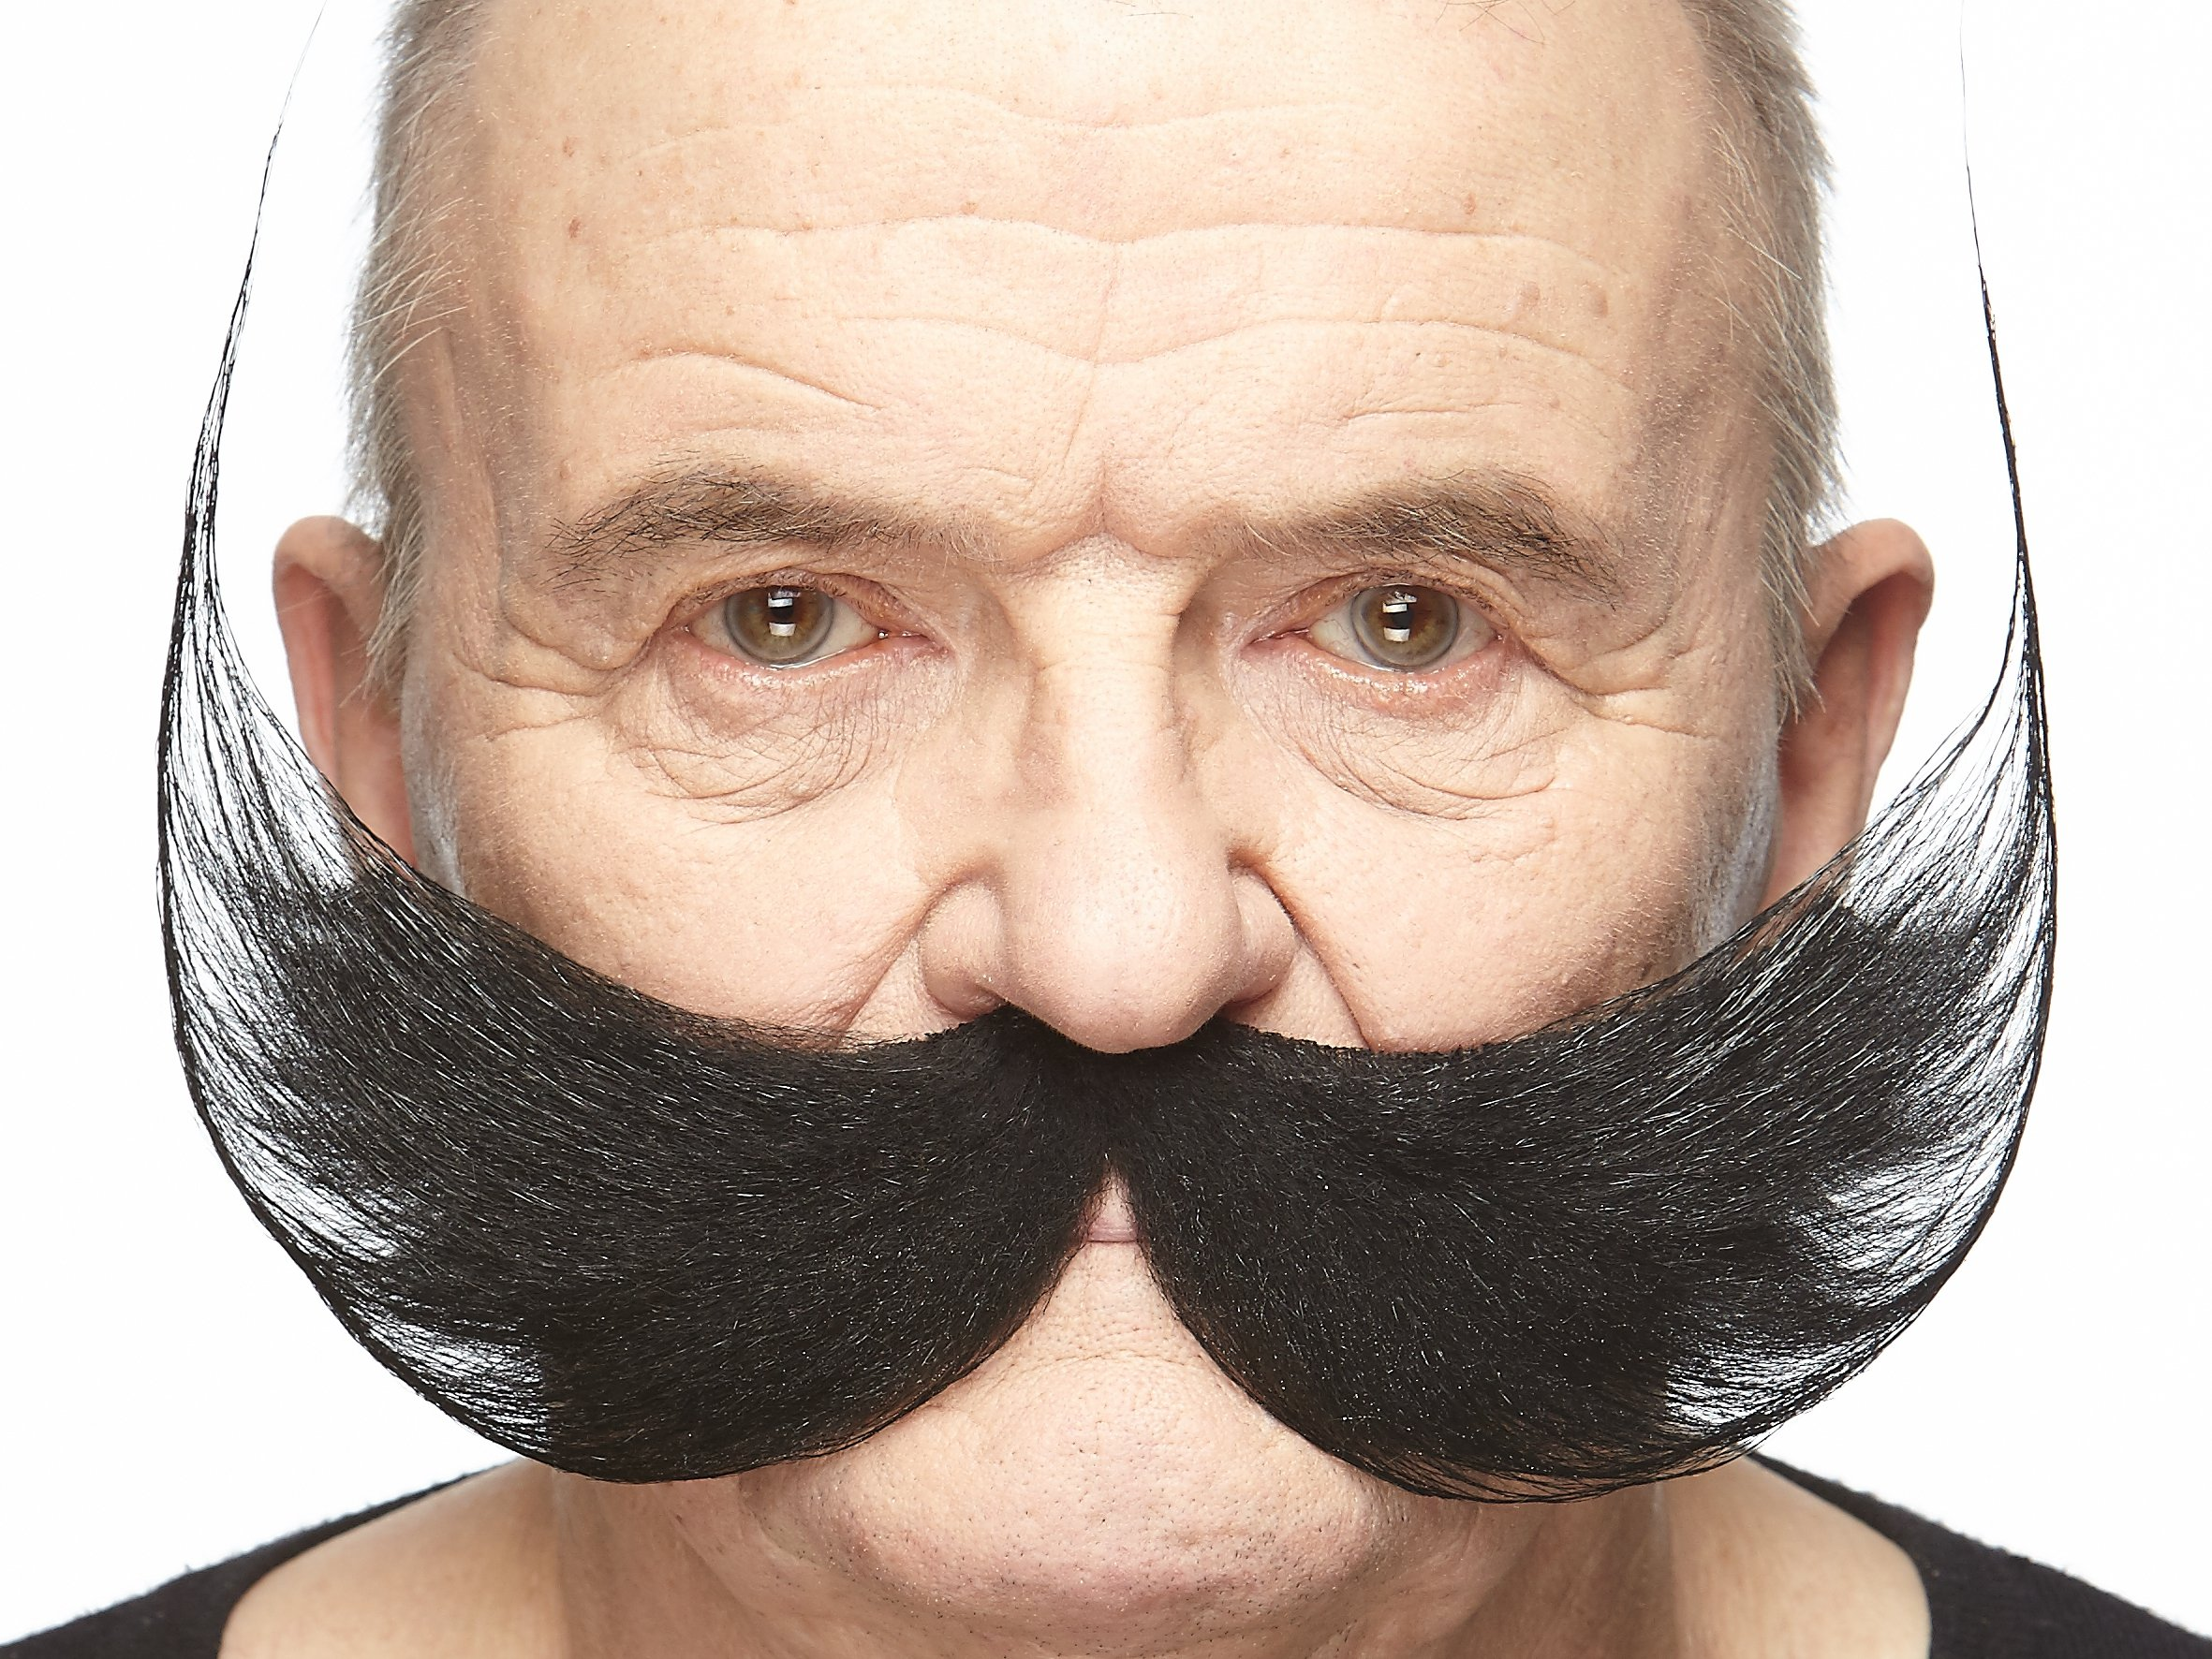 Mustaches Self Adhesive, Novelty, Fake Fisherman's, Black Color